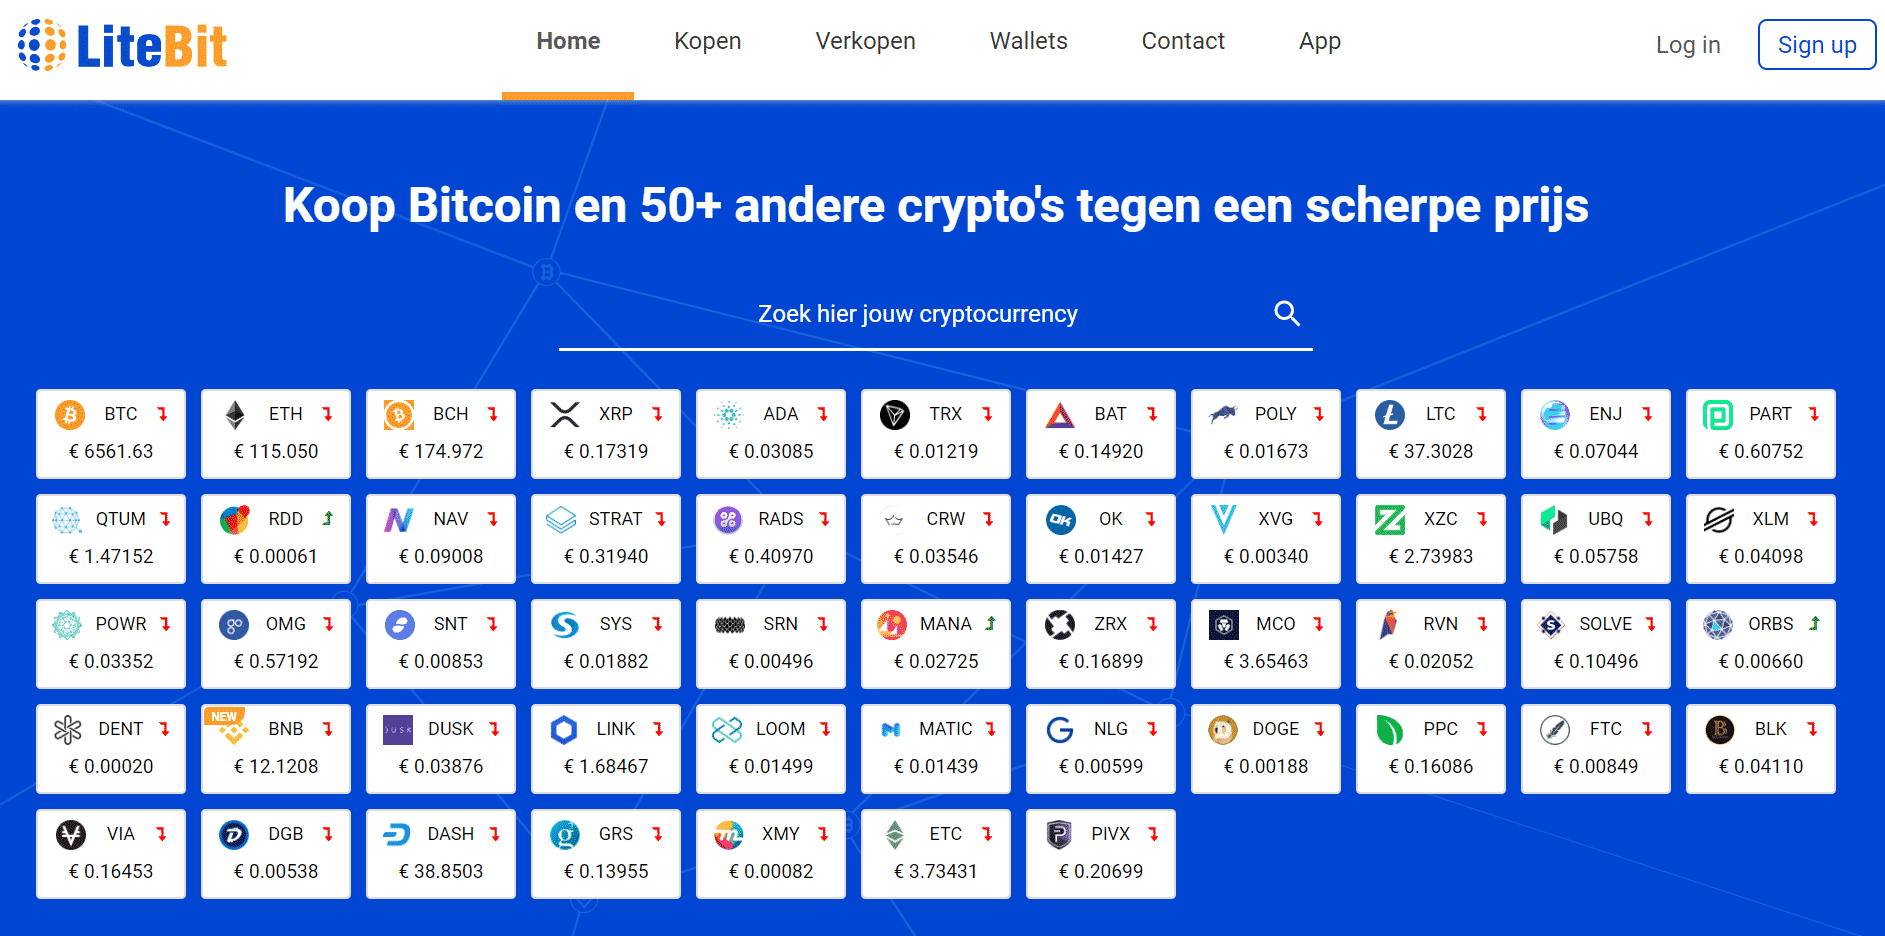 De Litebit website